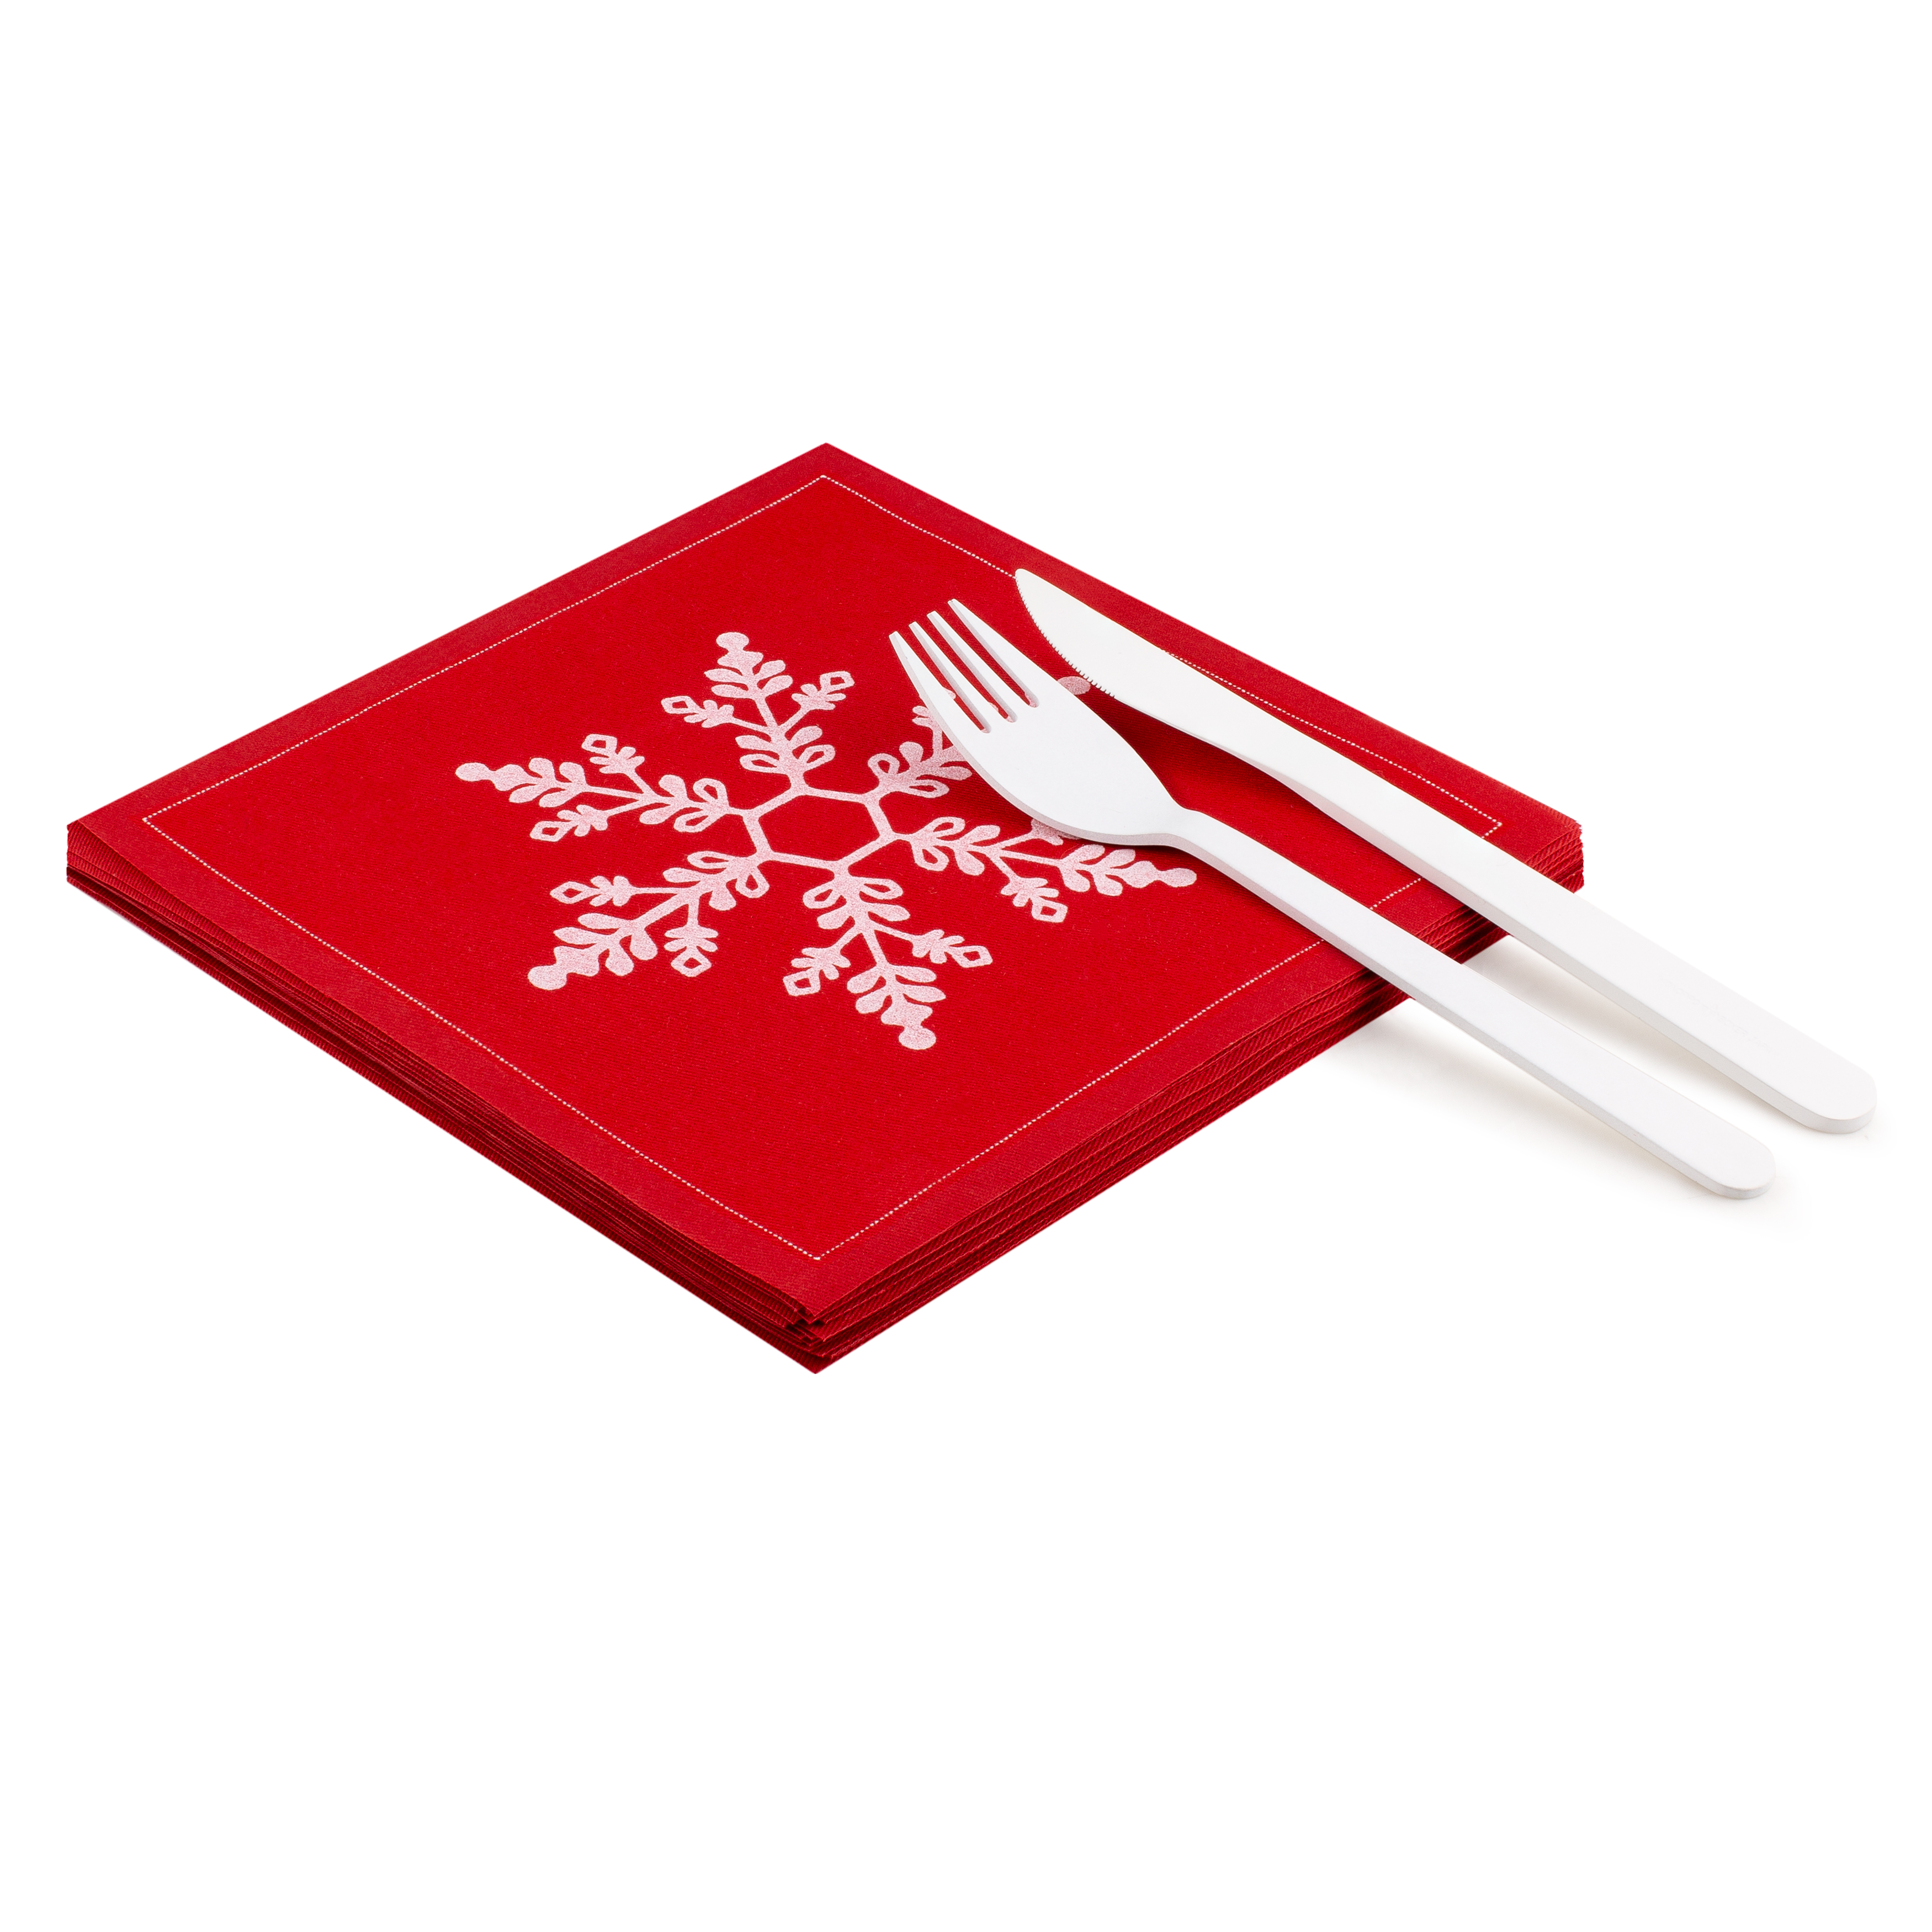 "Snowflake Red Cotton Luncheon - 8"" x 8"" - 25 units"